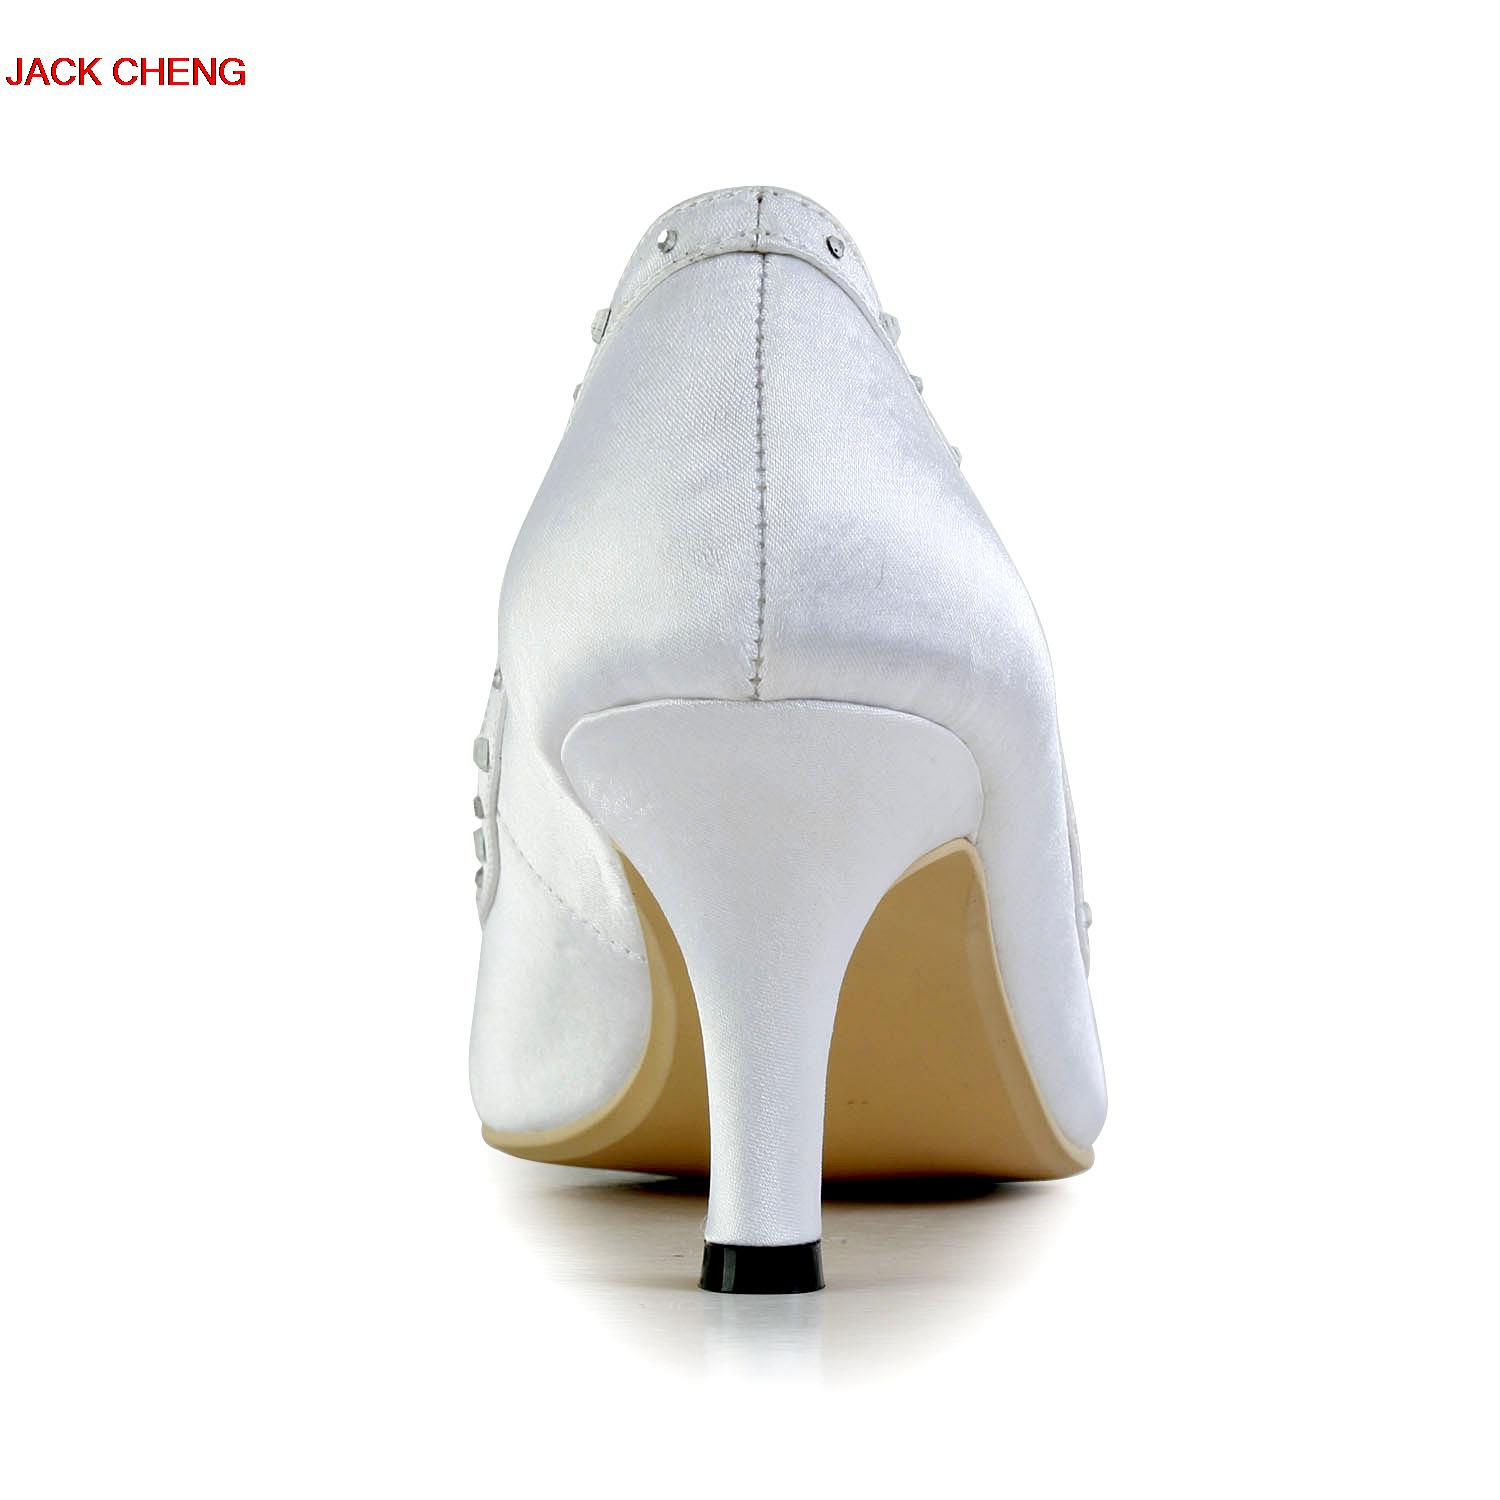 White Satin Bridal Dress Shoes Pointed Toe Glitter Flower Wedding Party Shoes Kitten Heels Sexy Women Prom Pumps Summer Sandals newest flock blade heels shoes 2018 pointed toe slip on women platform pumps sexy metal heels wedding party dress shoes